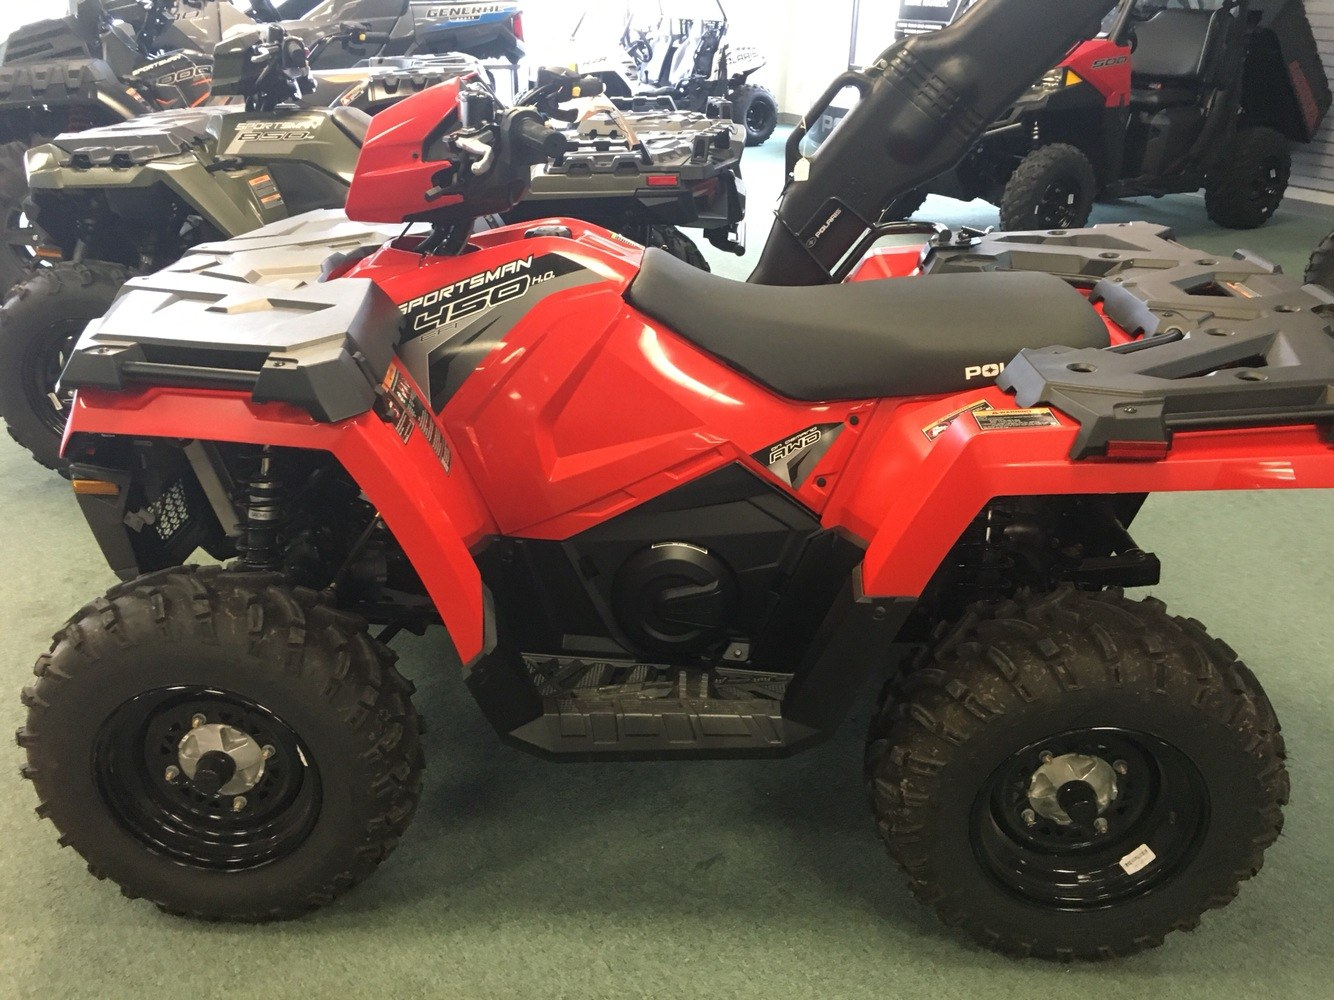 2019 Polaris SPORTSMAN 450 HO in Lafayette, Louisiana - Photo 4